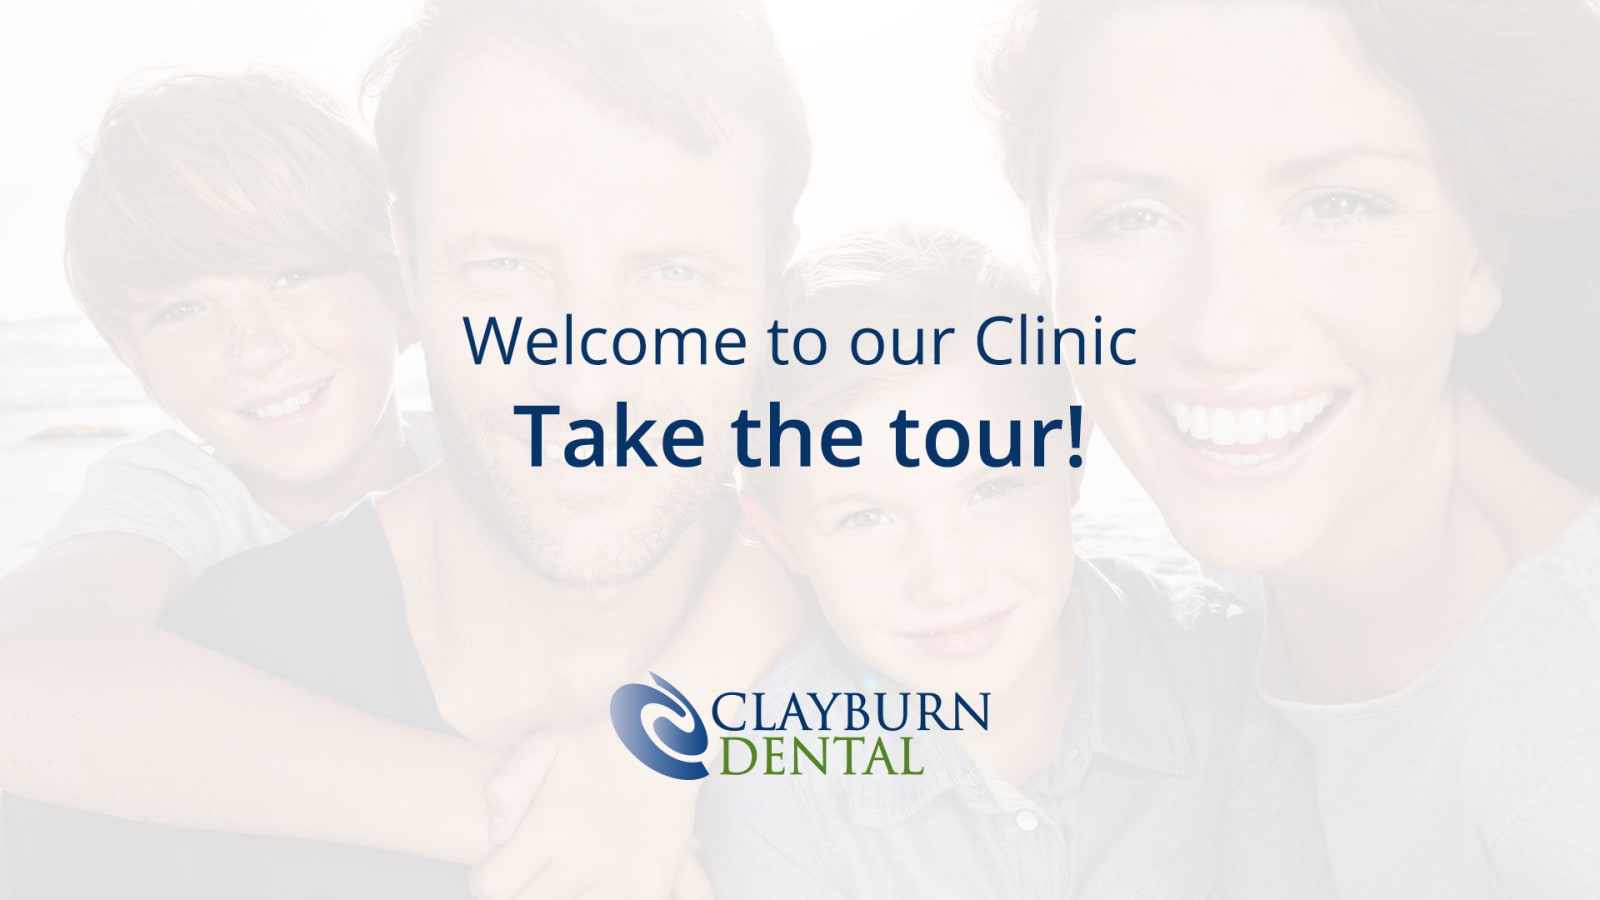 Clayburn Dental Clinic Tour